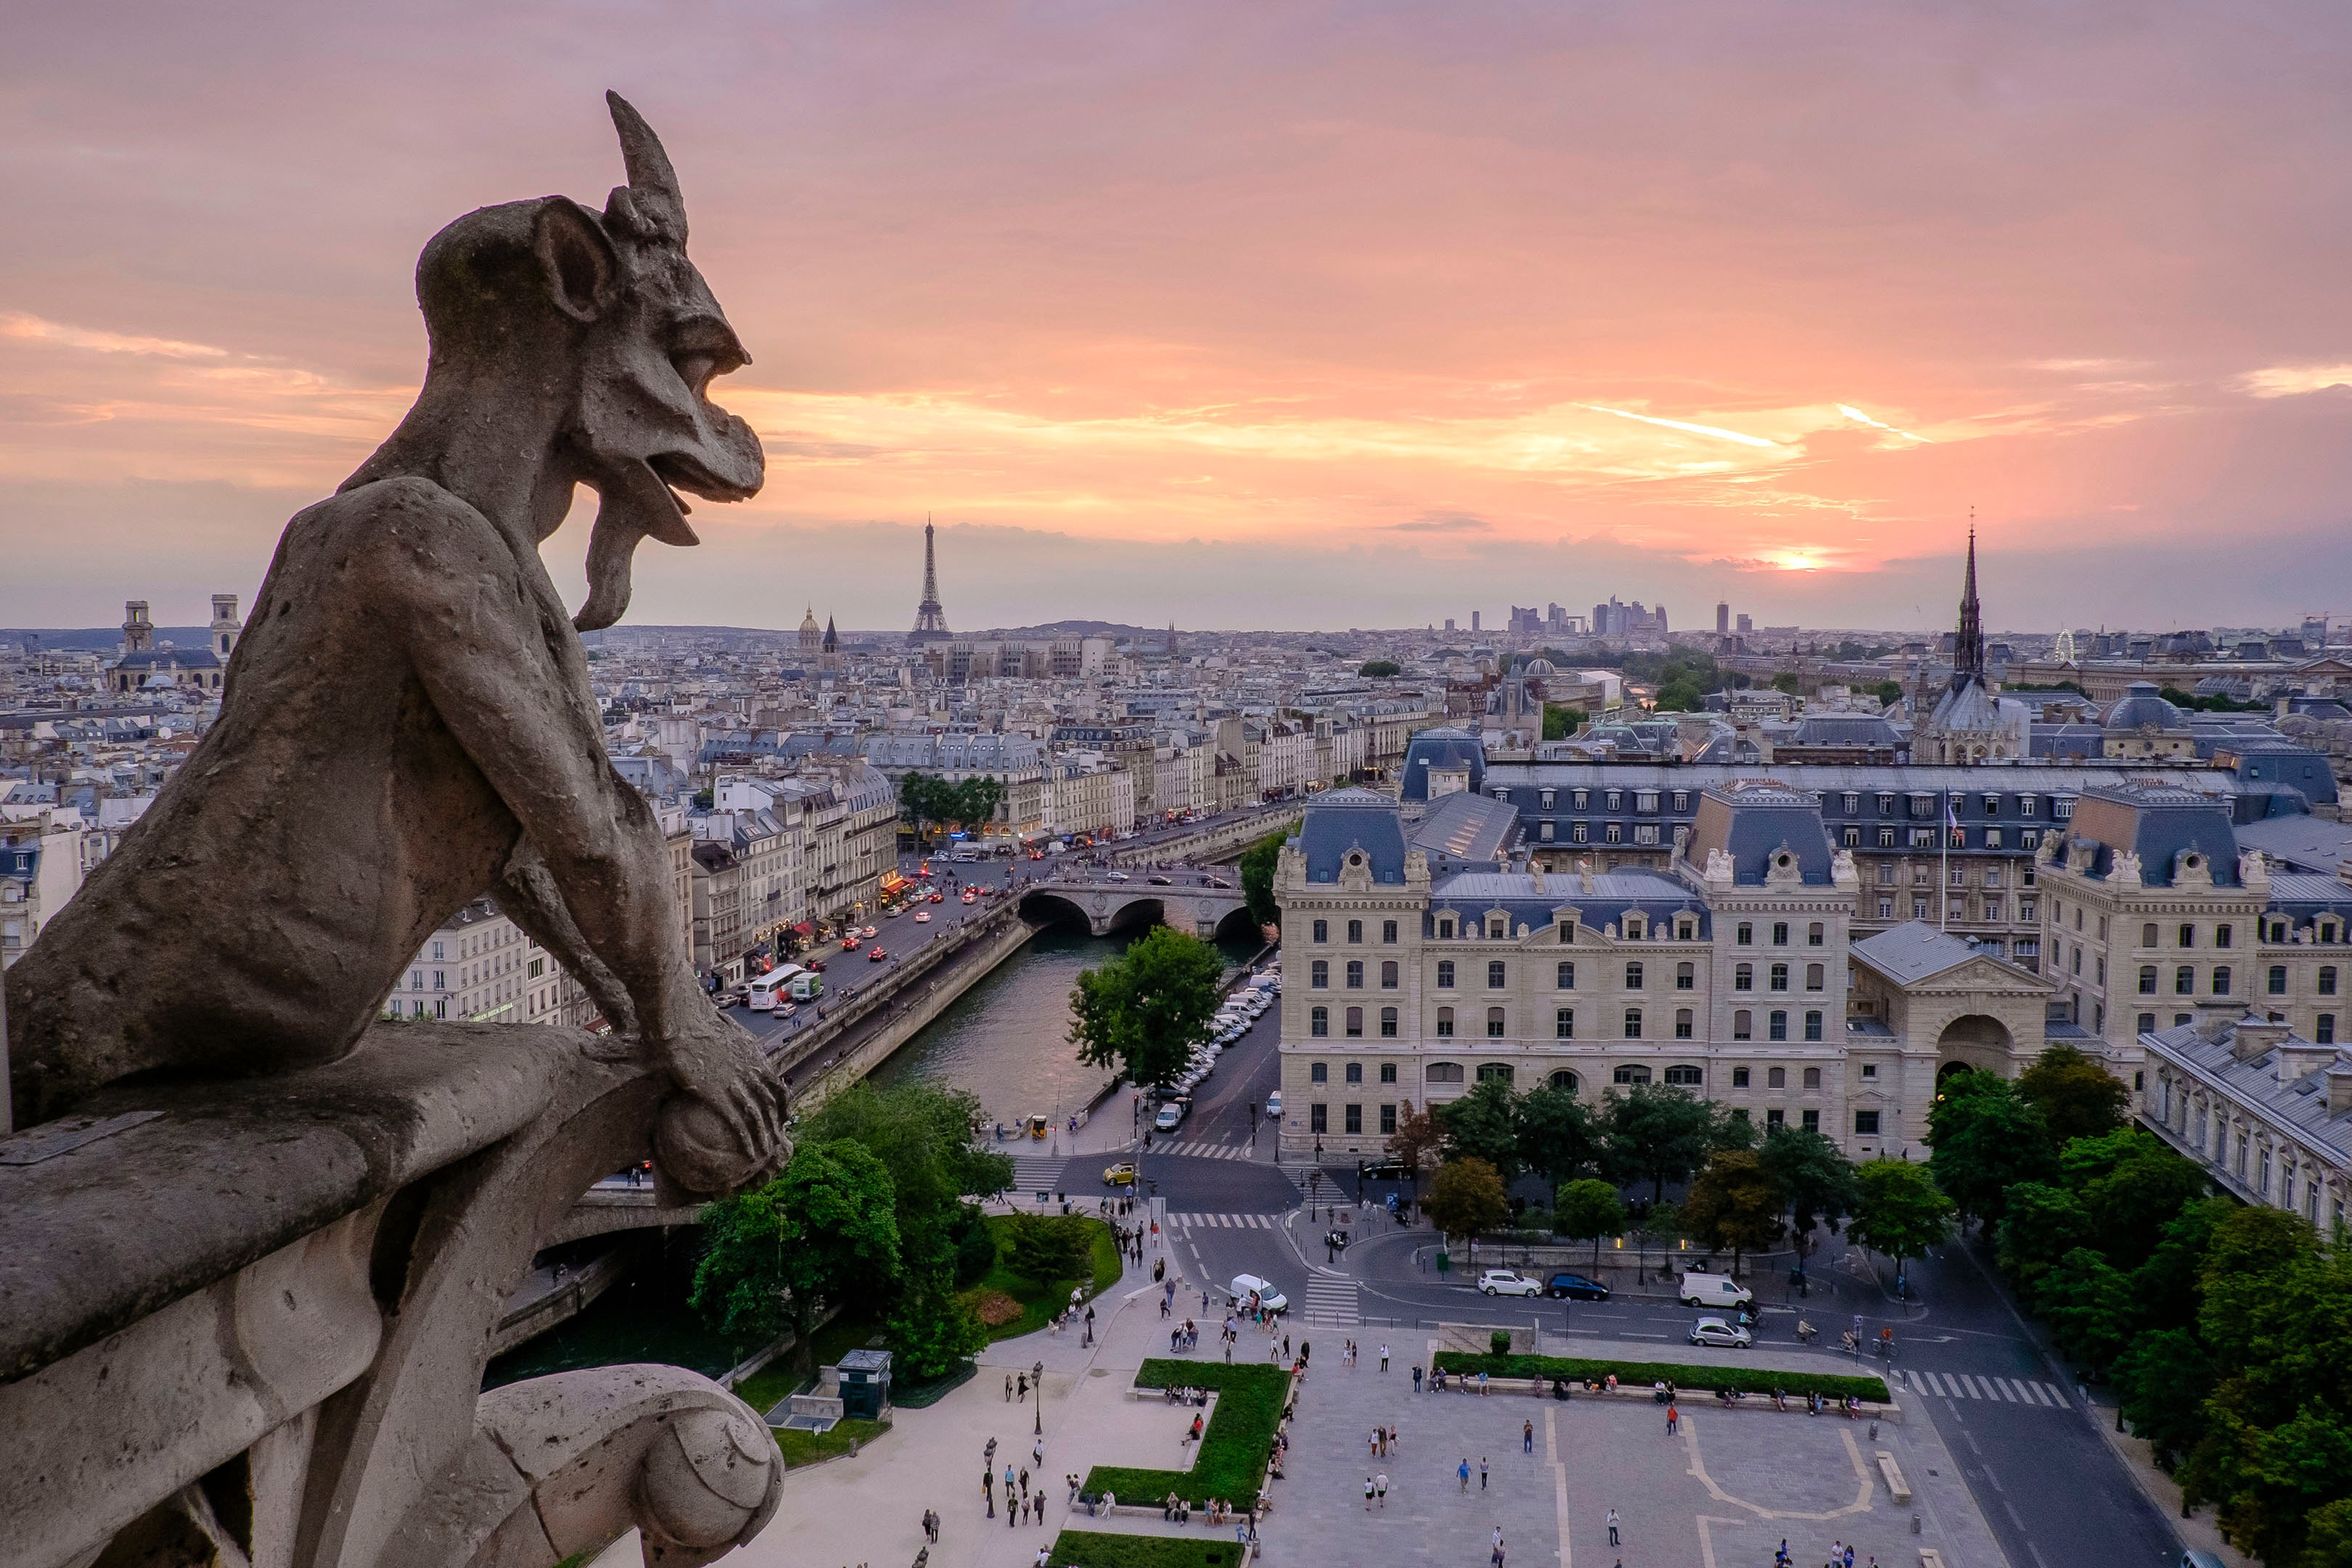 Chimaira, mythological hybrid between lion and goat looking out over Paris. Photo: Pedro Lastra via Unsplash